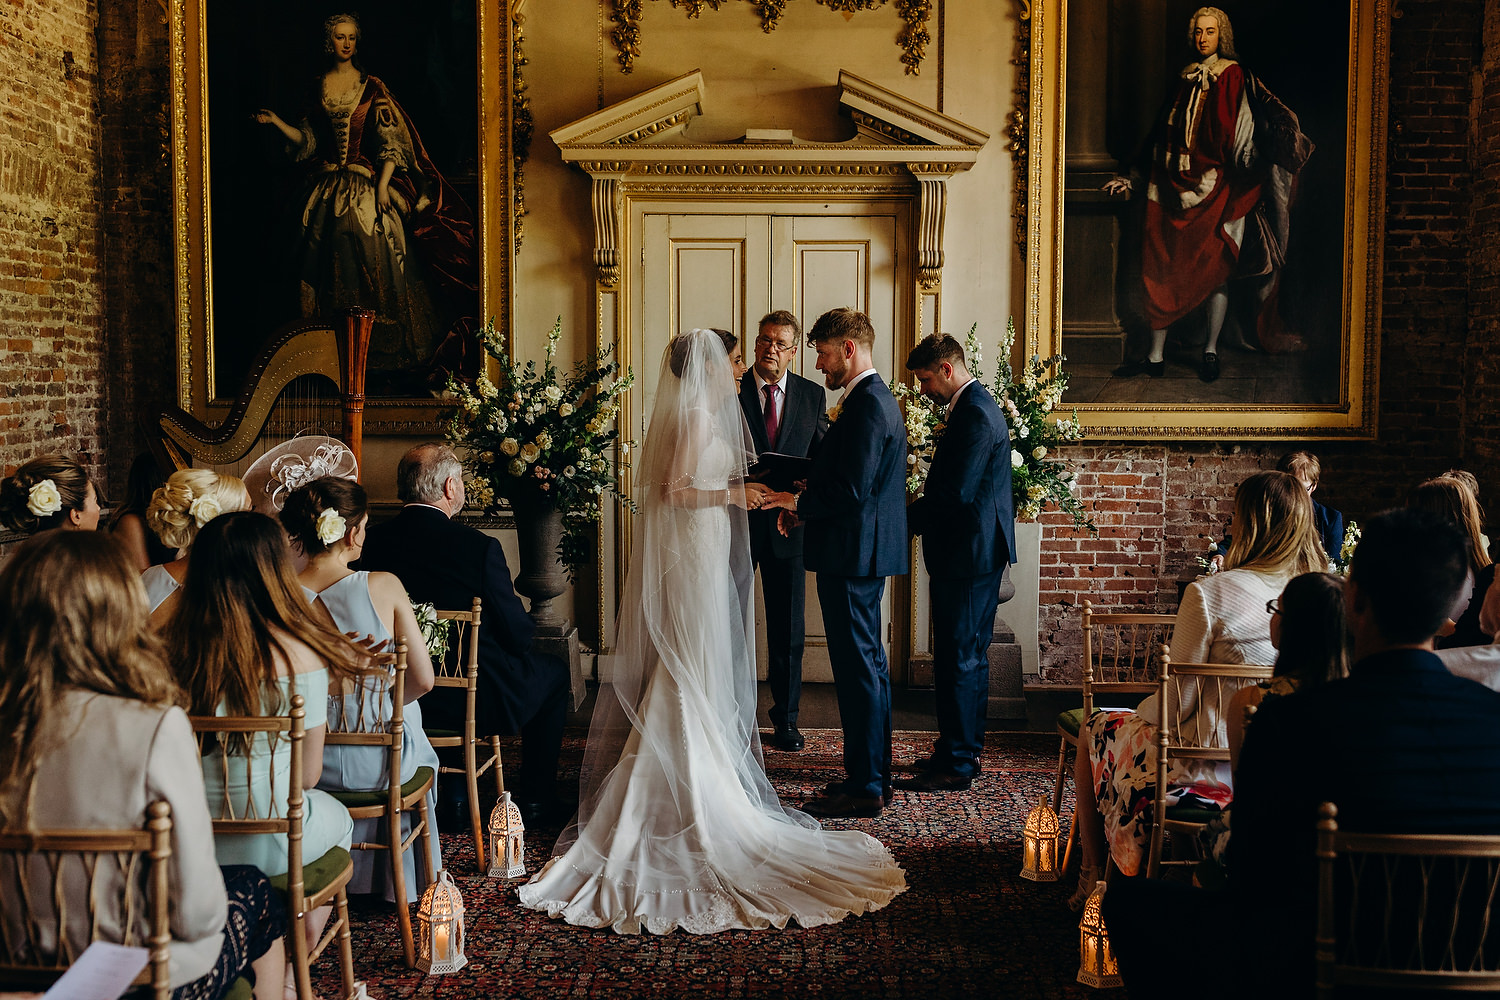 Wedding in room at St Giles House